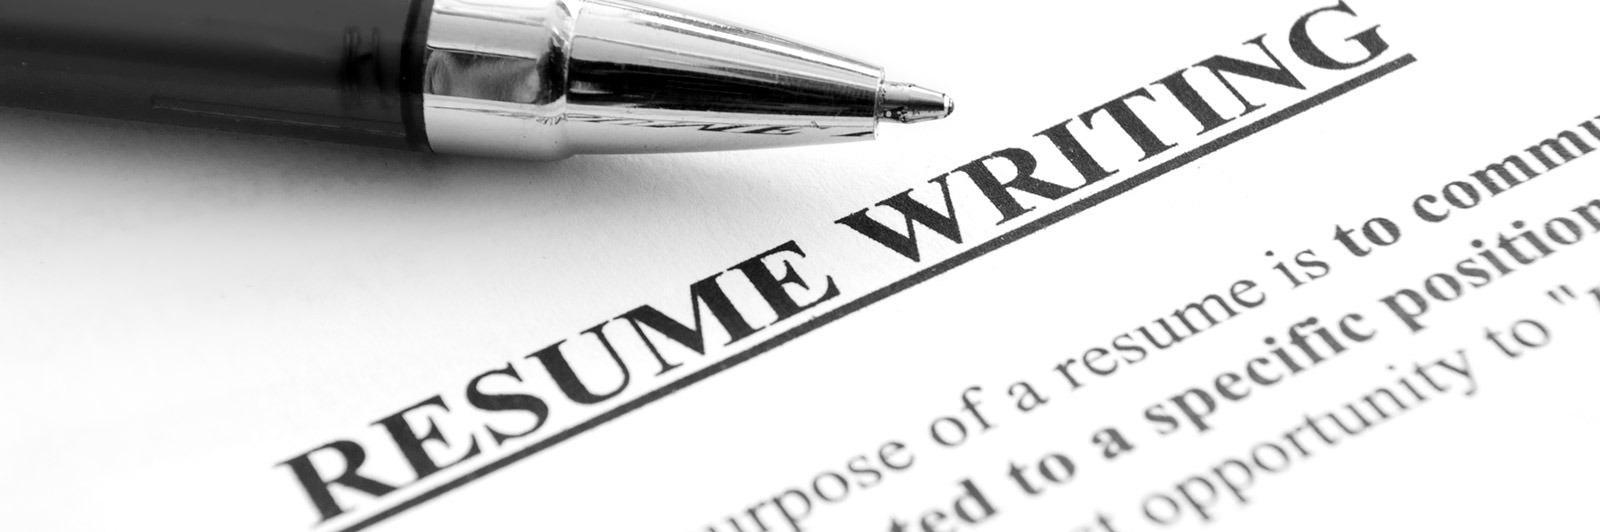 resume writing services in punjab chandigarh haryana himachal delhi